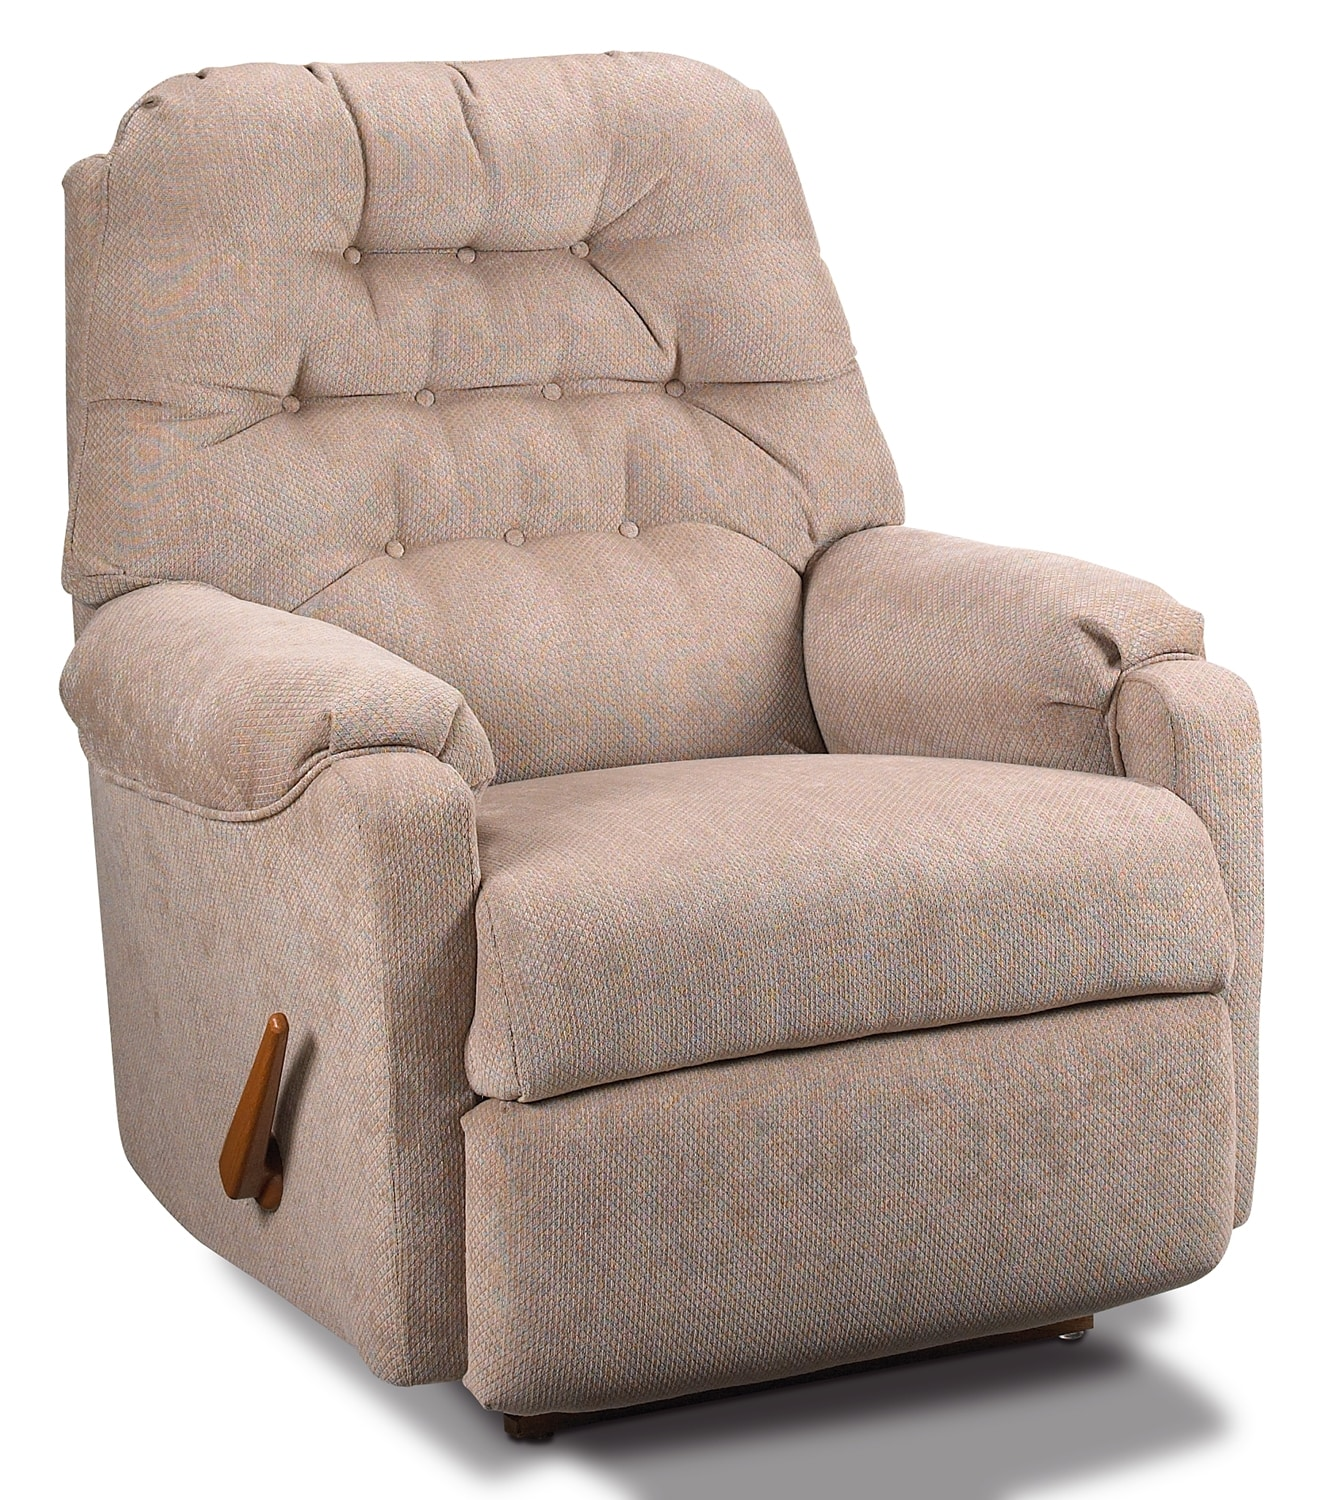 [Martha Rocker Recliner]